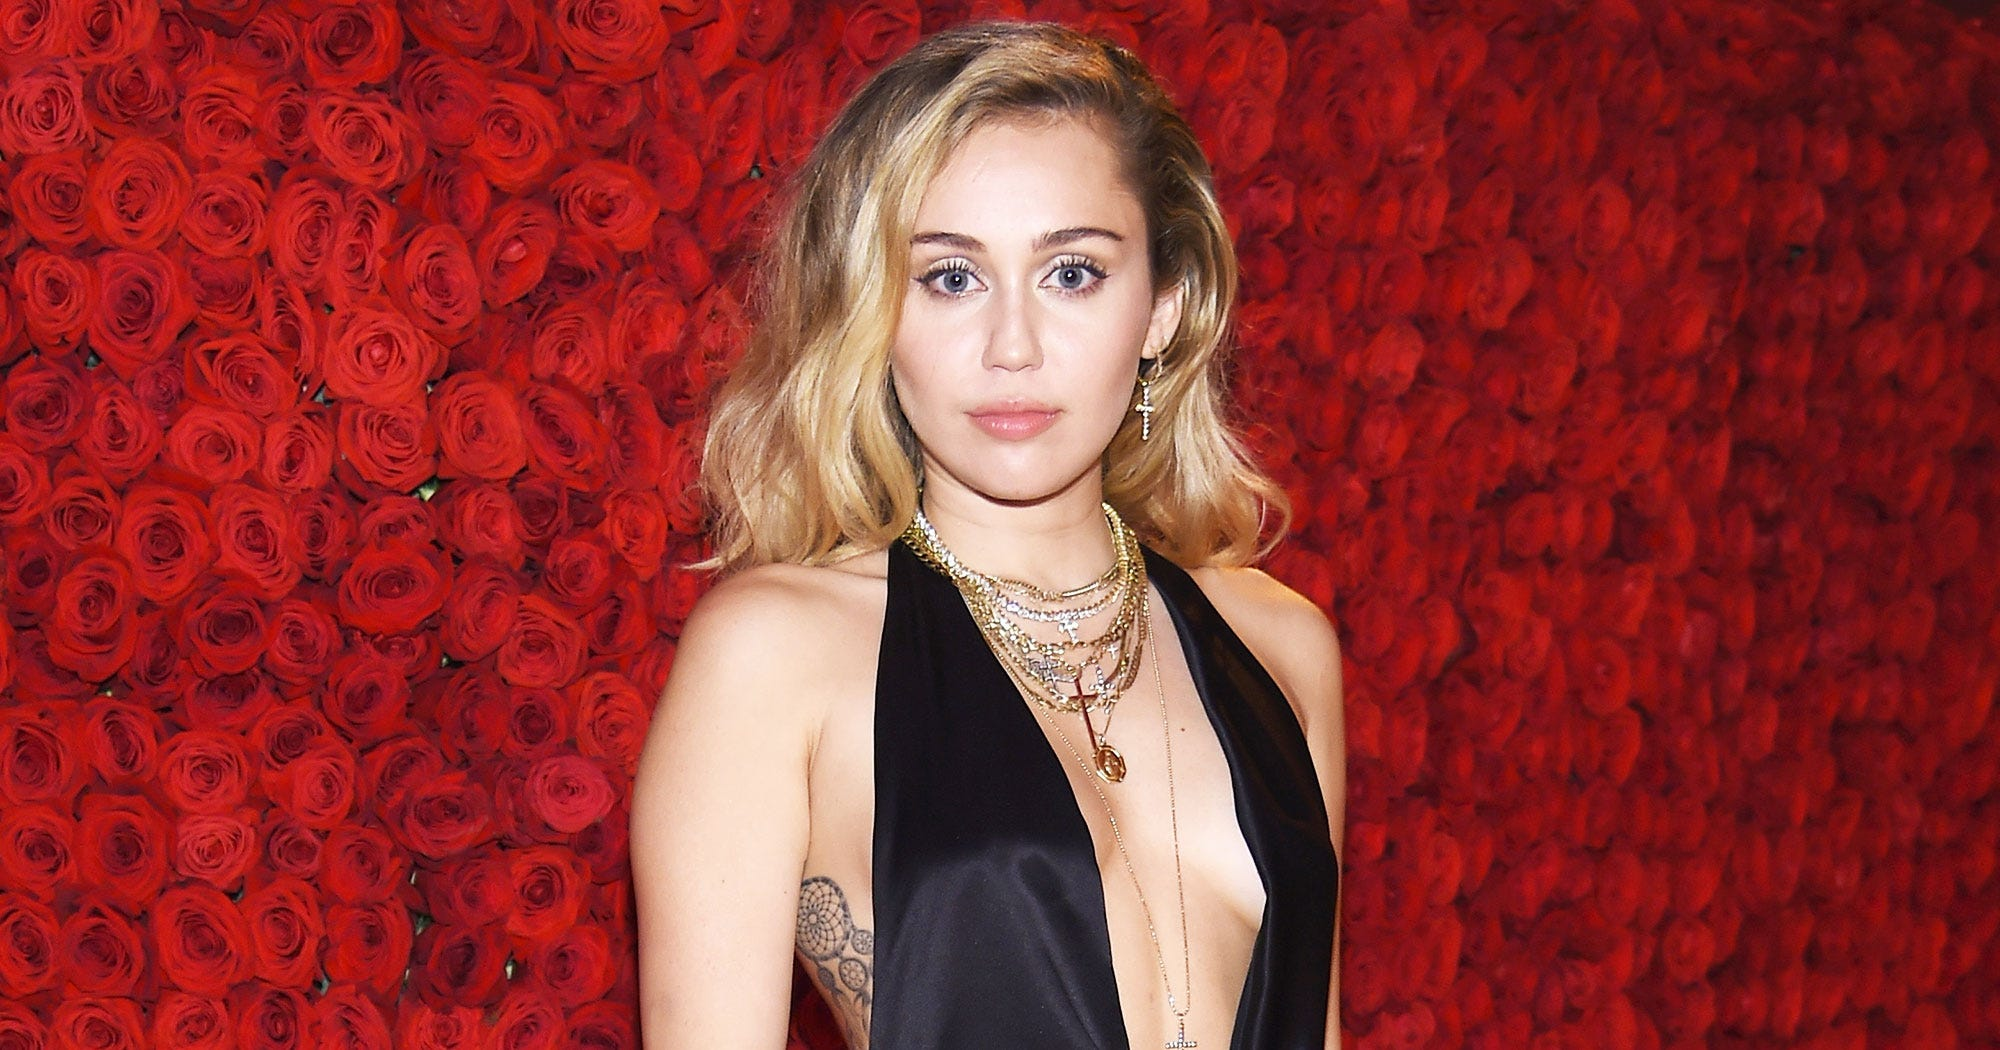 Miley Cyrus Groped By Fan In Europe, Response